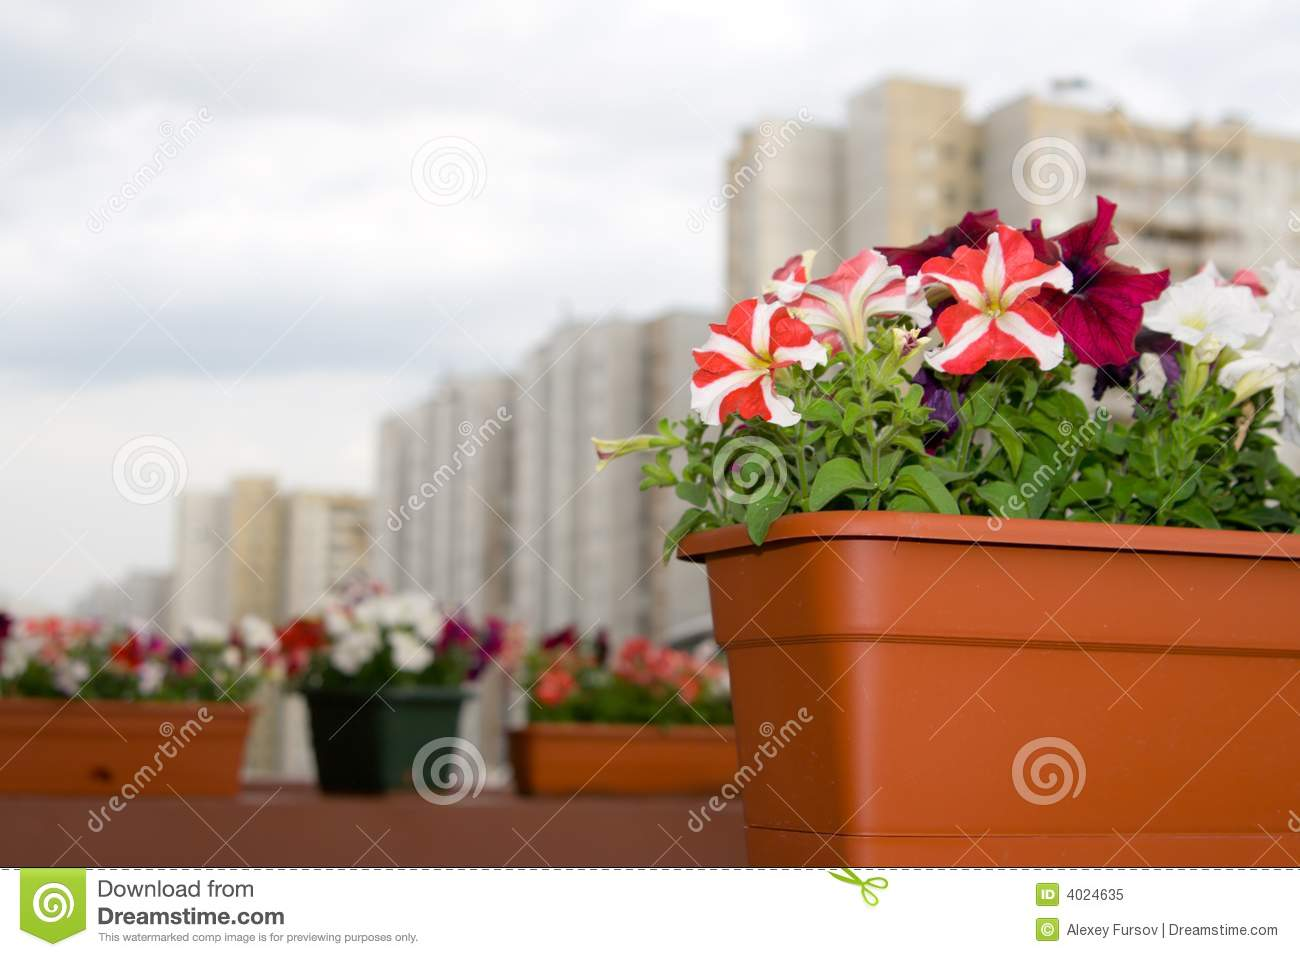 Street decoration with flowers